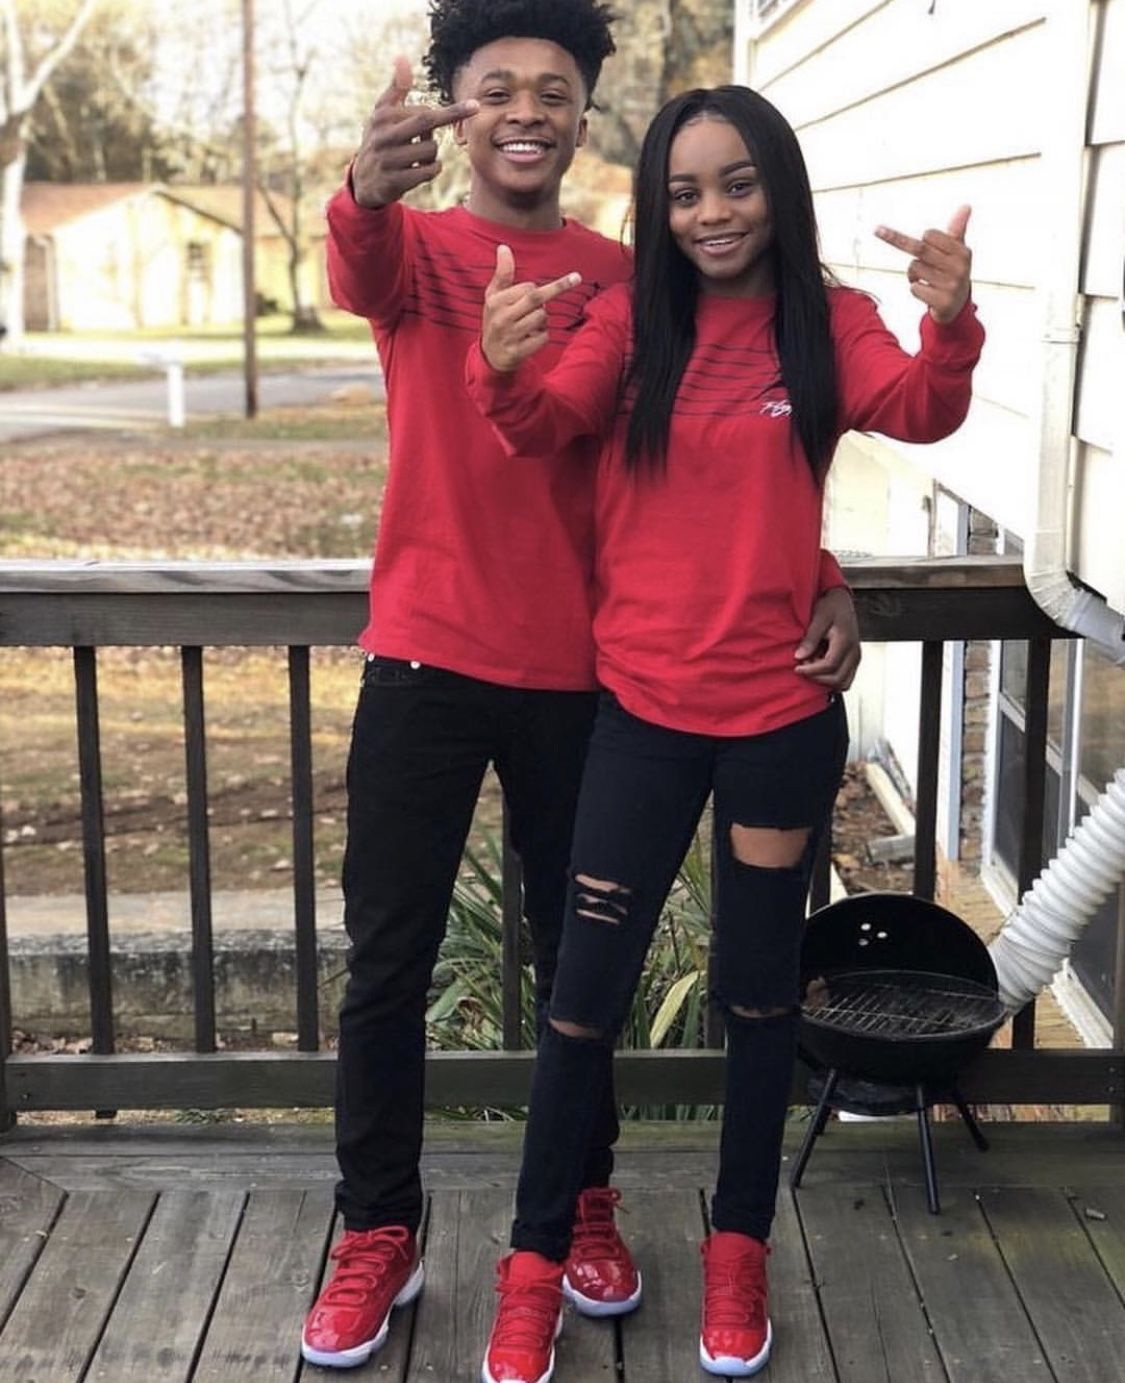 pinⒹⓐⓢⓘⓐ Ⓐⓡⓜⓞⓝⓘ on boo'd up  cute couple outfits